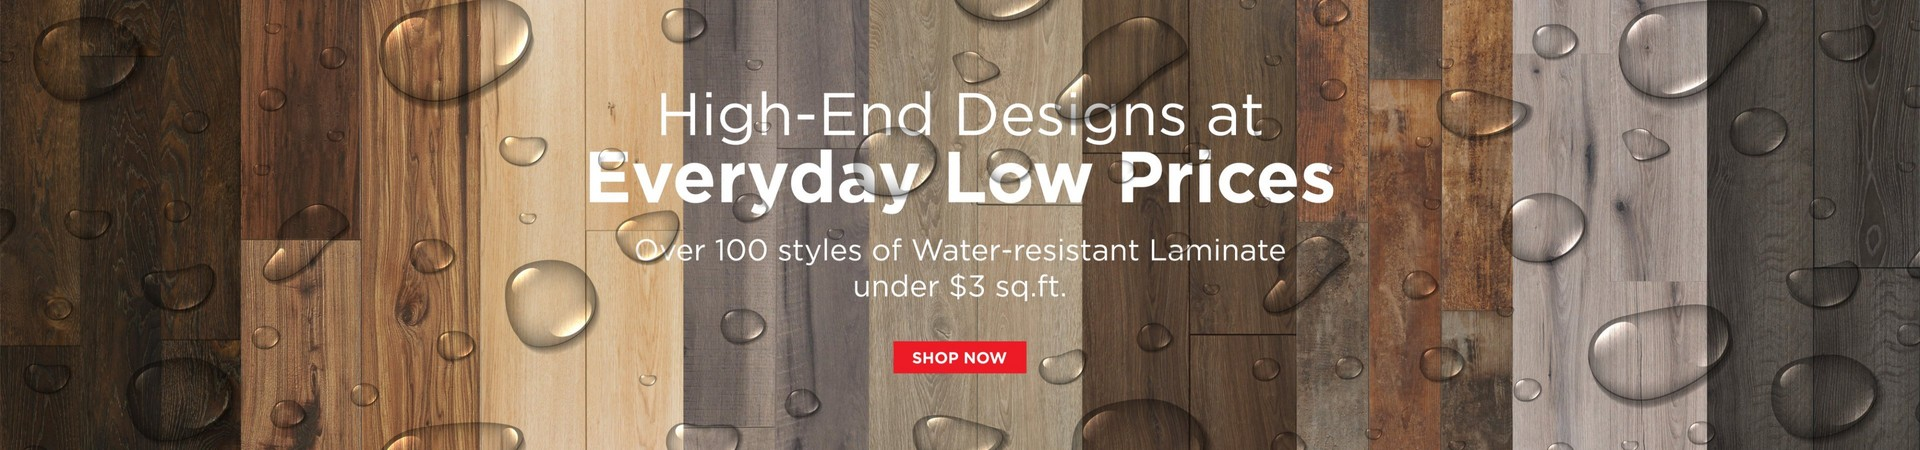 Water-Resistant Laminate Services